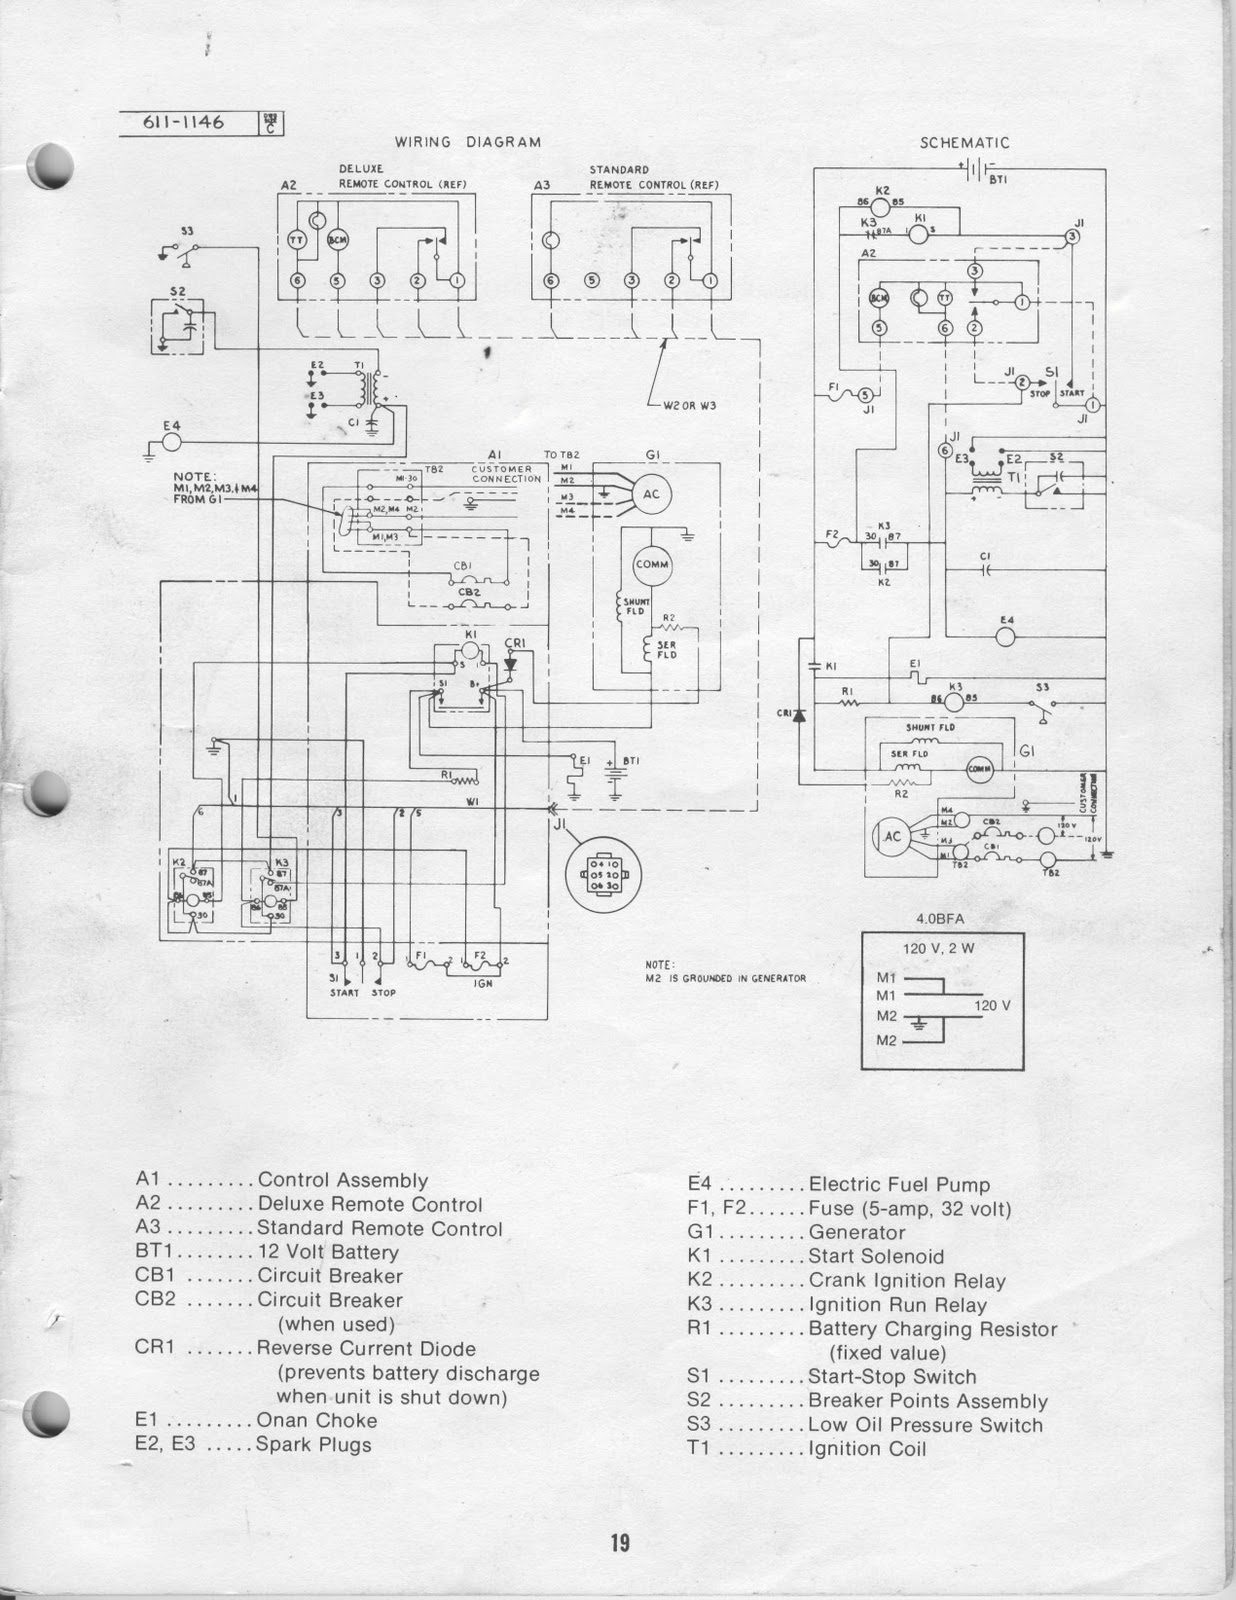 fleetwood rv wiring diagram heater wiring library Fleetwood Battery Wiring Diagram 1983 fleetwood pace arrow owners manuals onan 4 0 kw bfa genset operators manual